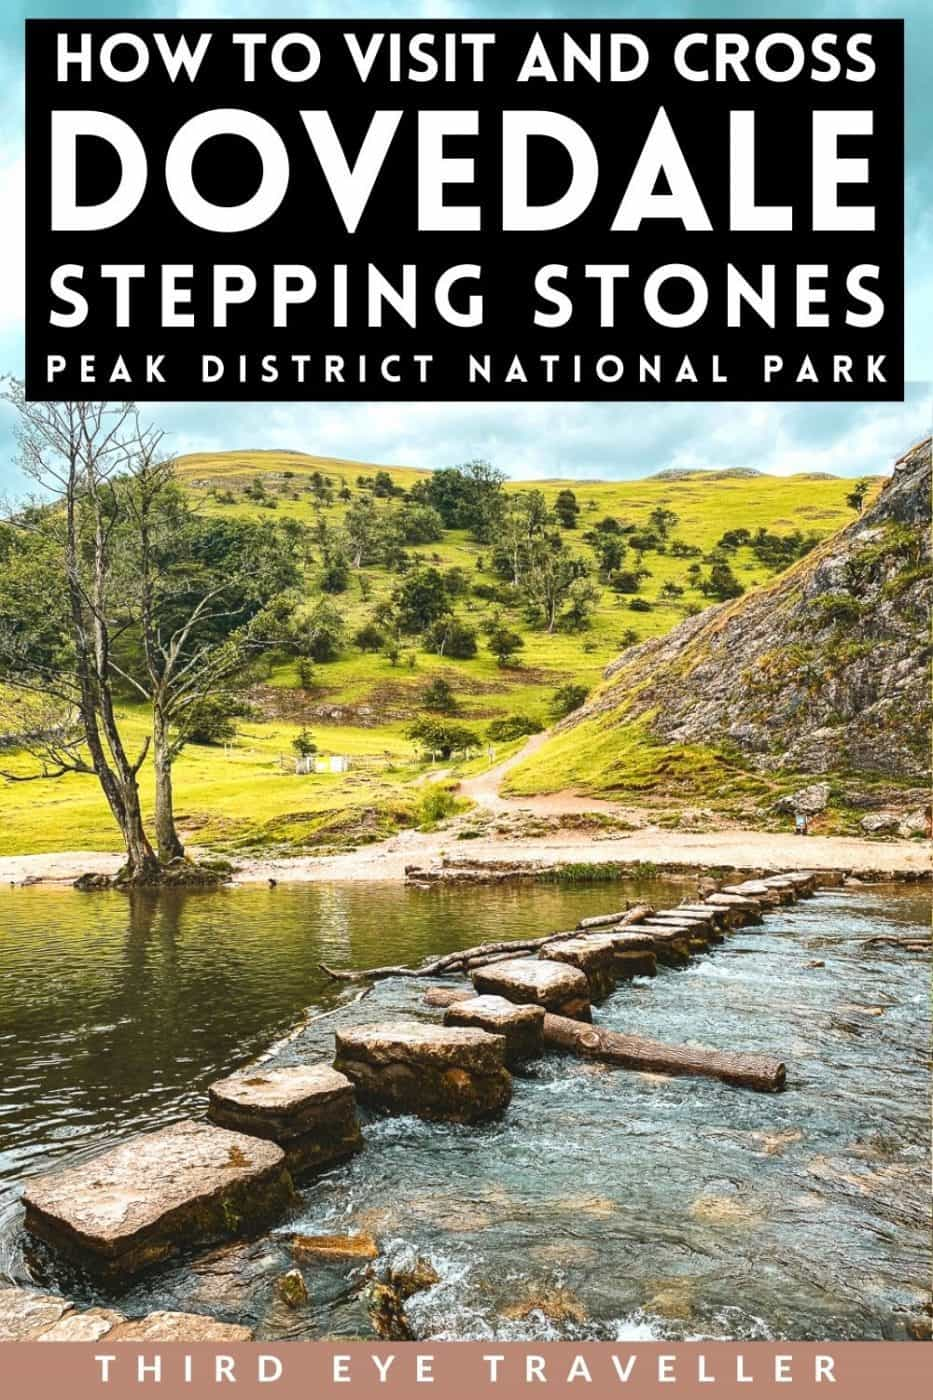 How to get to Dovedale Stepping stones Peak District